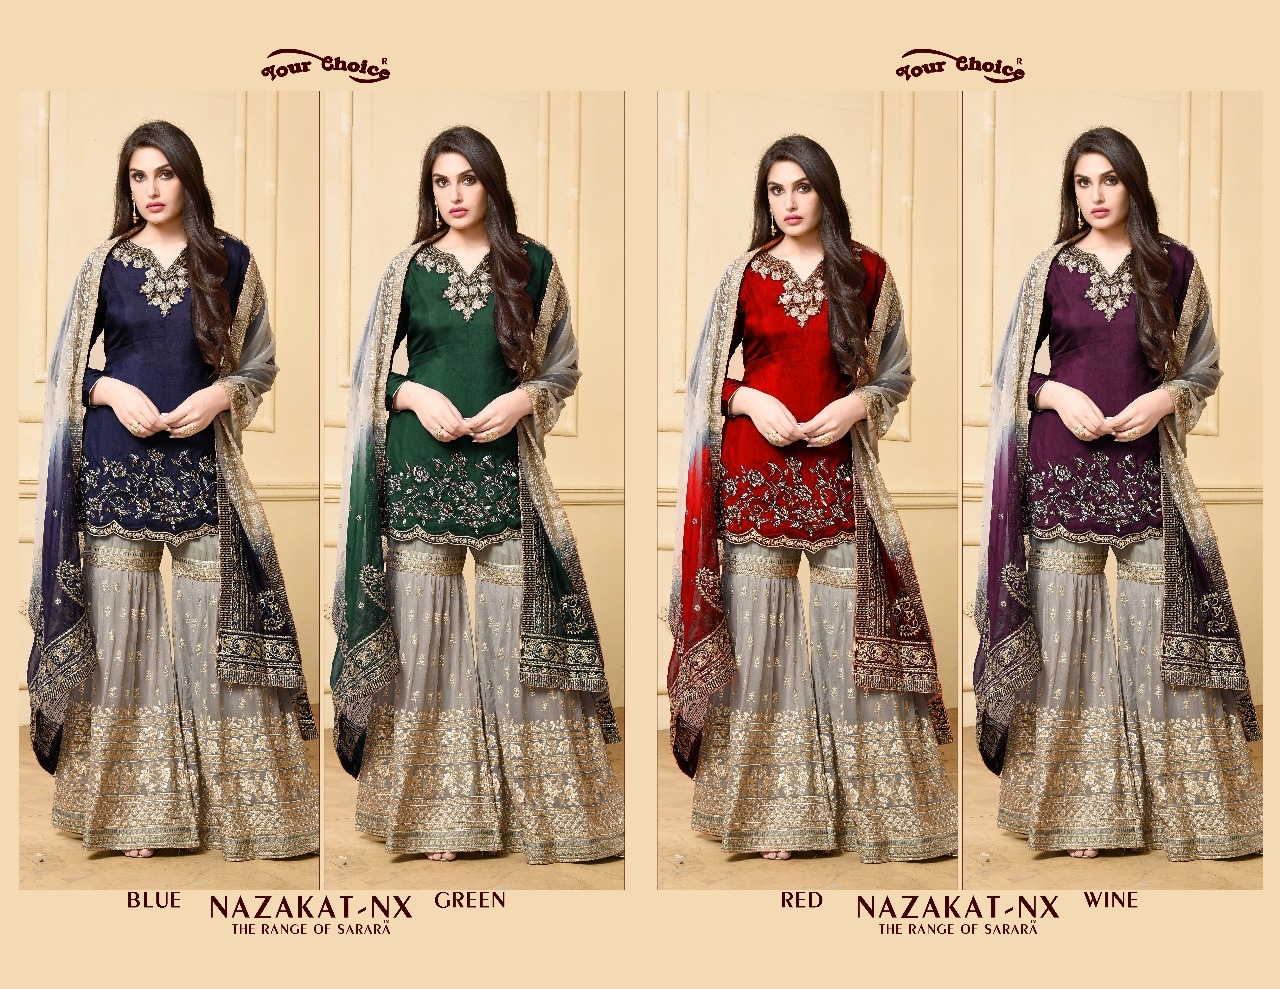 447ae1eac7 NAZAKAT NX BY YOUR CHOICE DESIGNER SUITS COLLECTION BEAUTIFUL ...